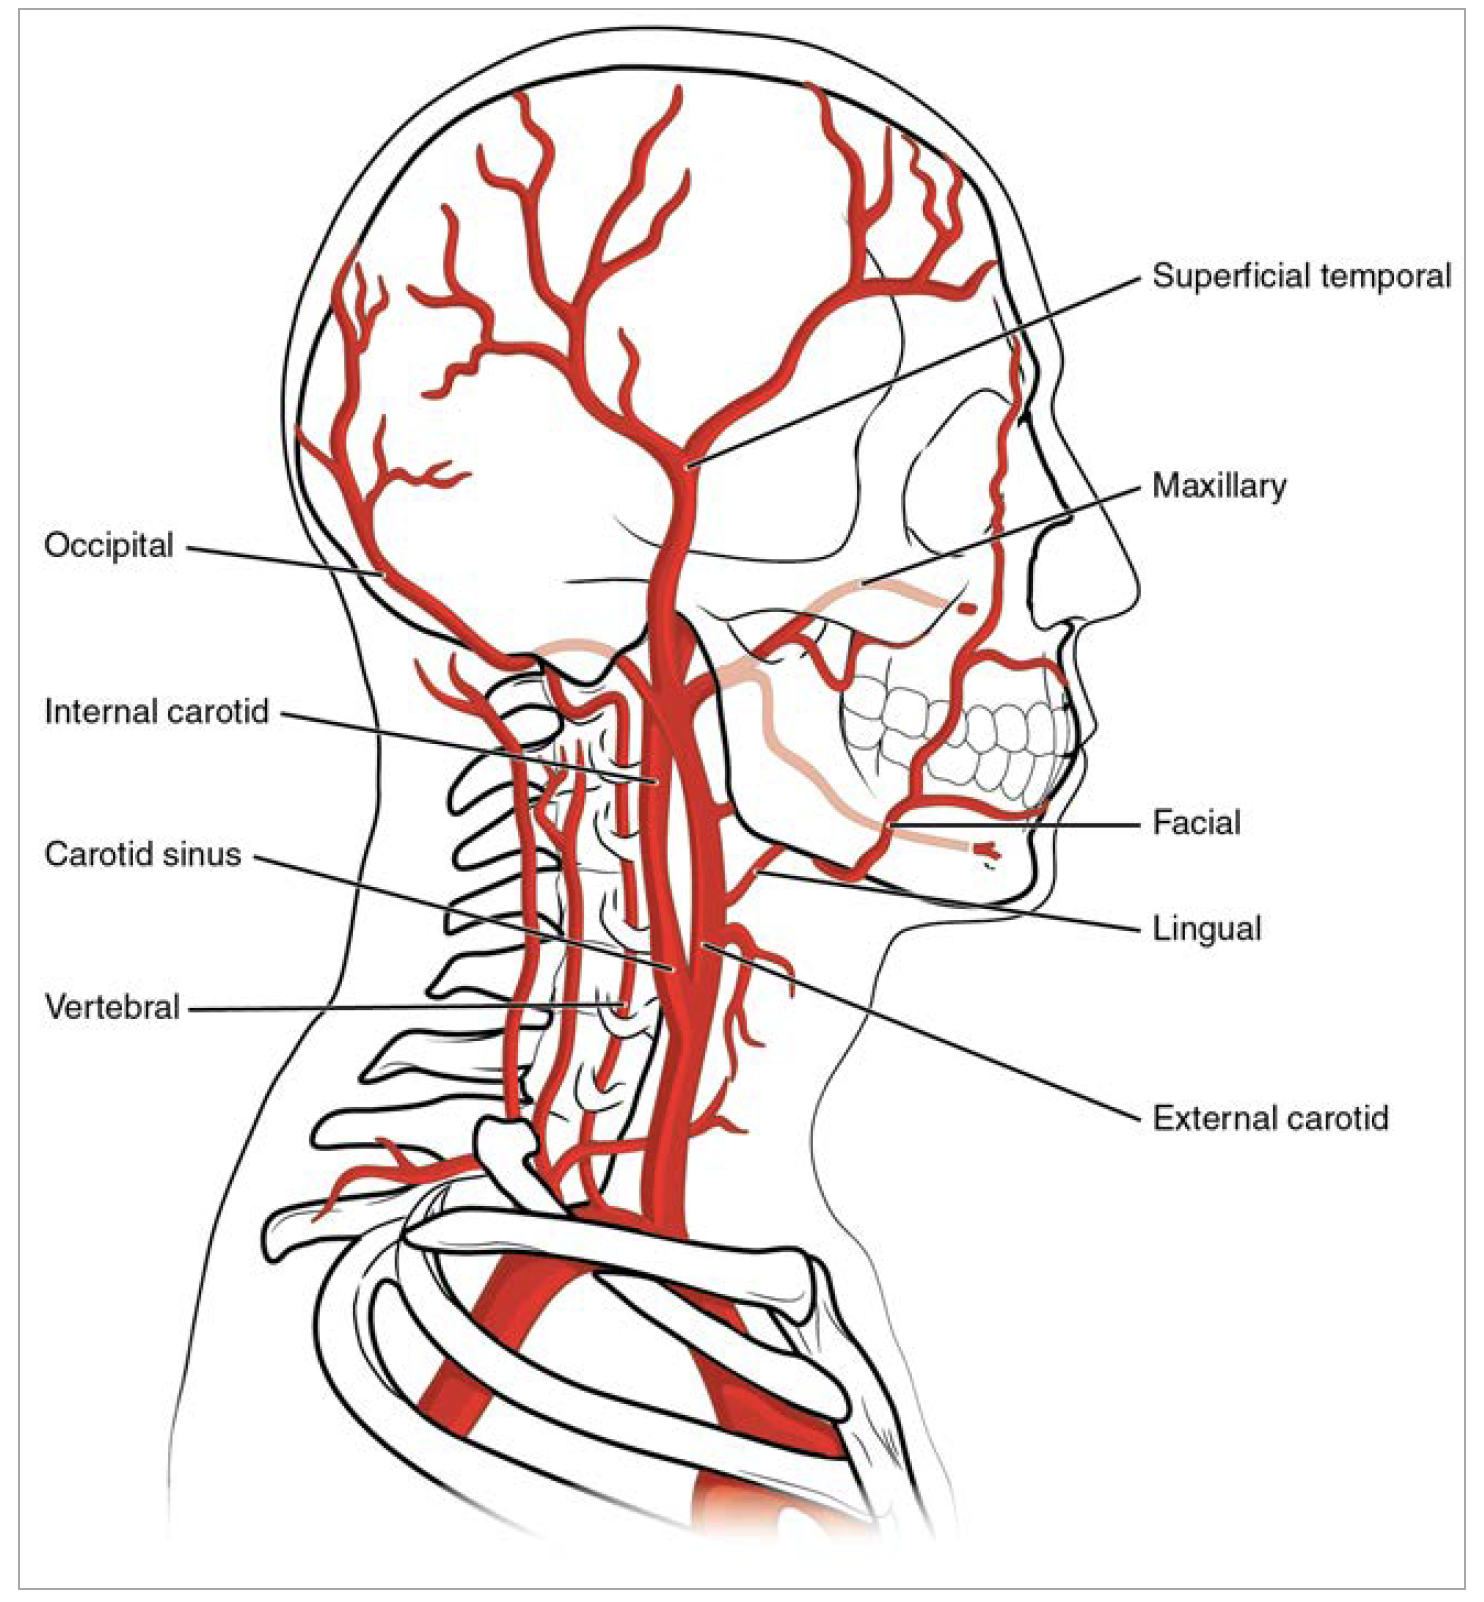 Reading Systemic Arterial System Submodule 23 Cardiovascular